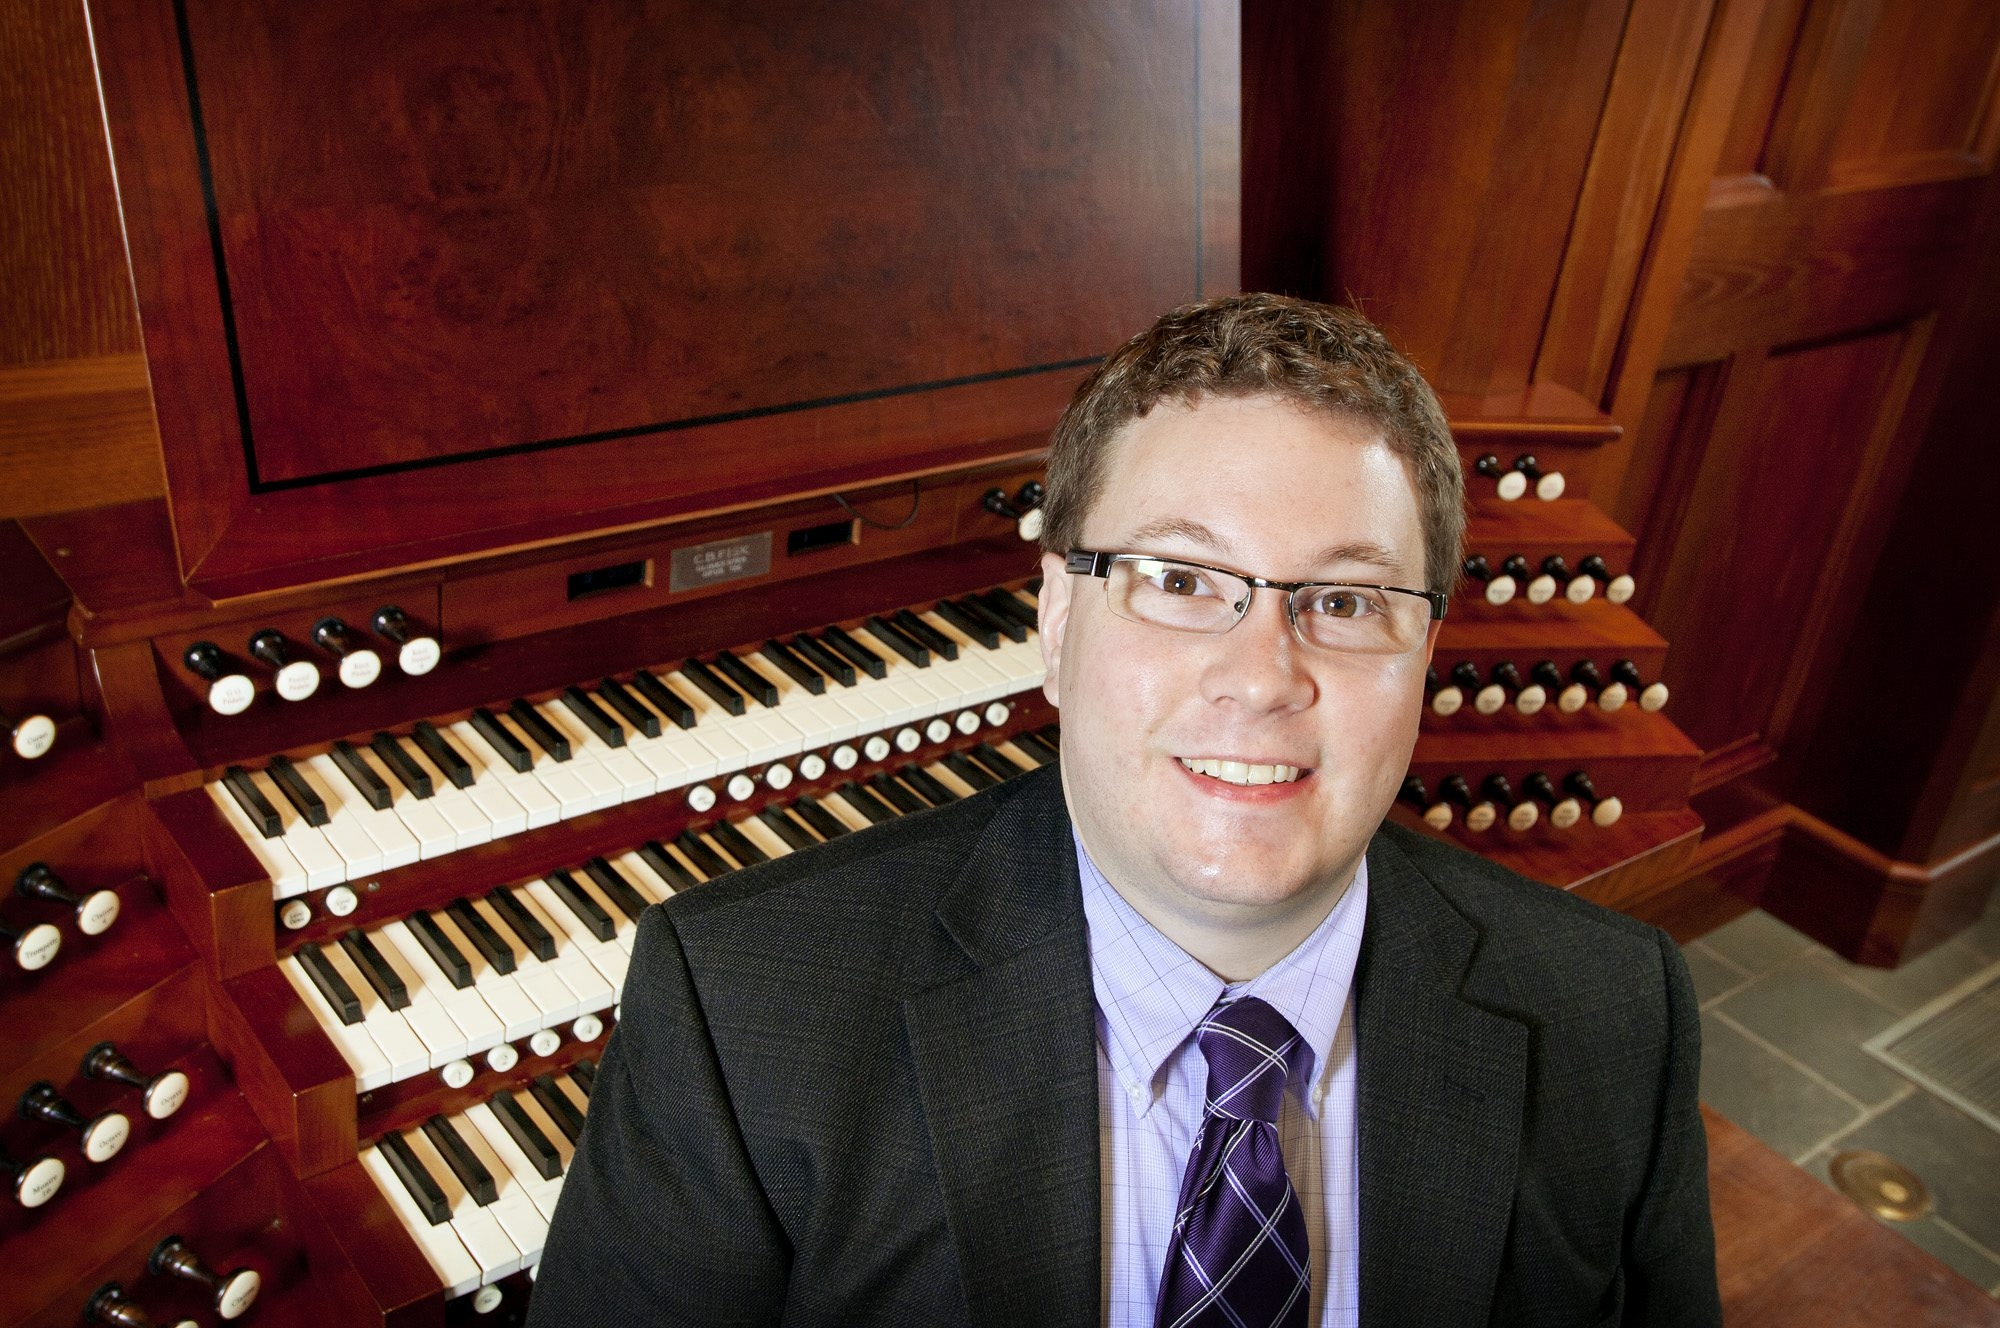 Andrew Scanlon is returning to St. Paul's Cathedral for a free concert.